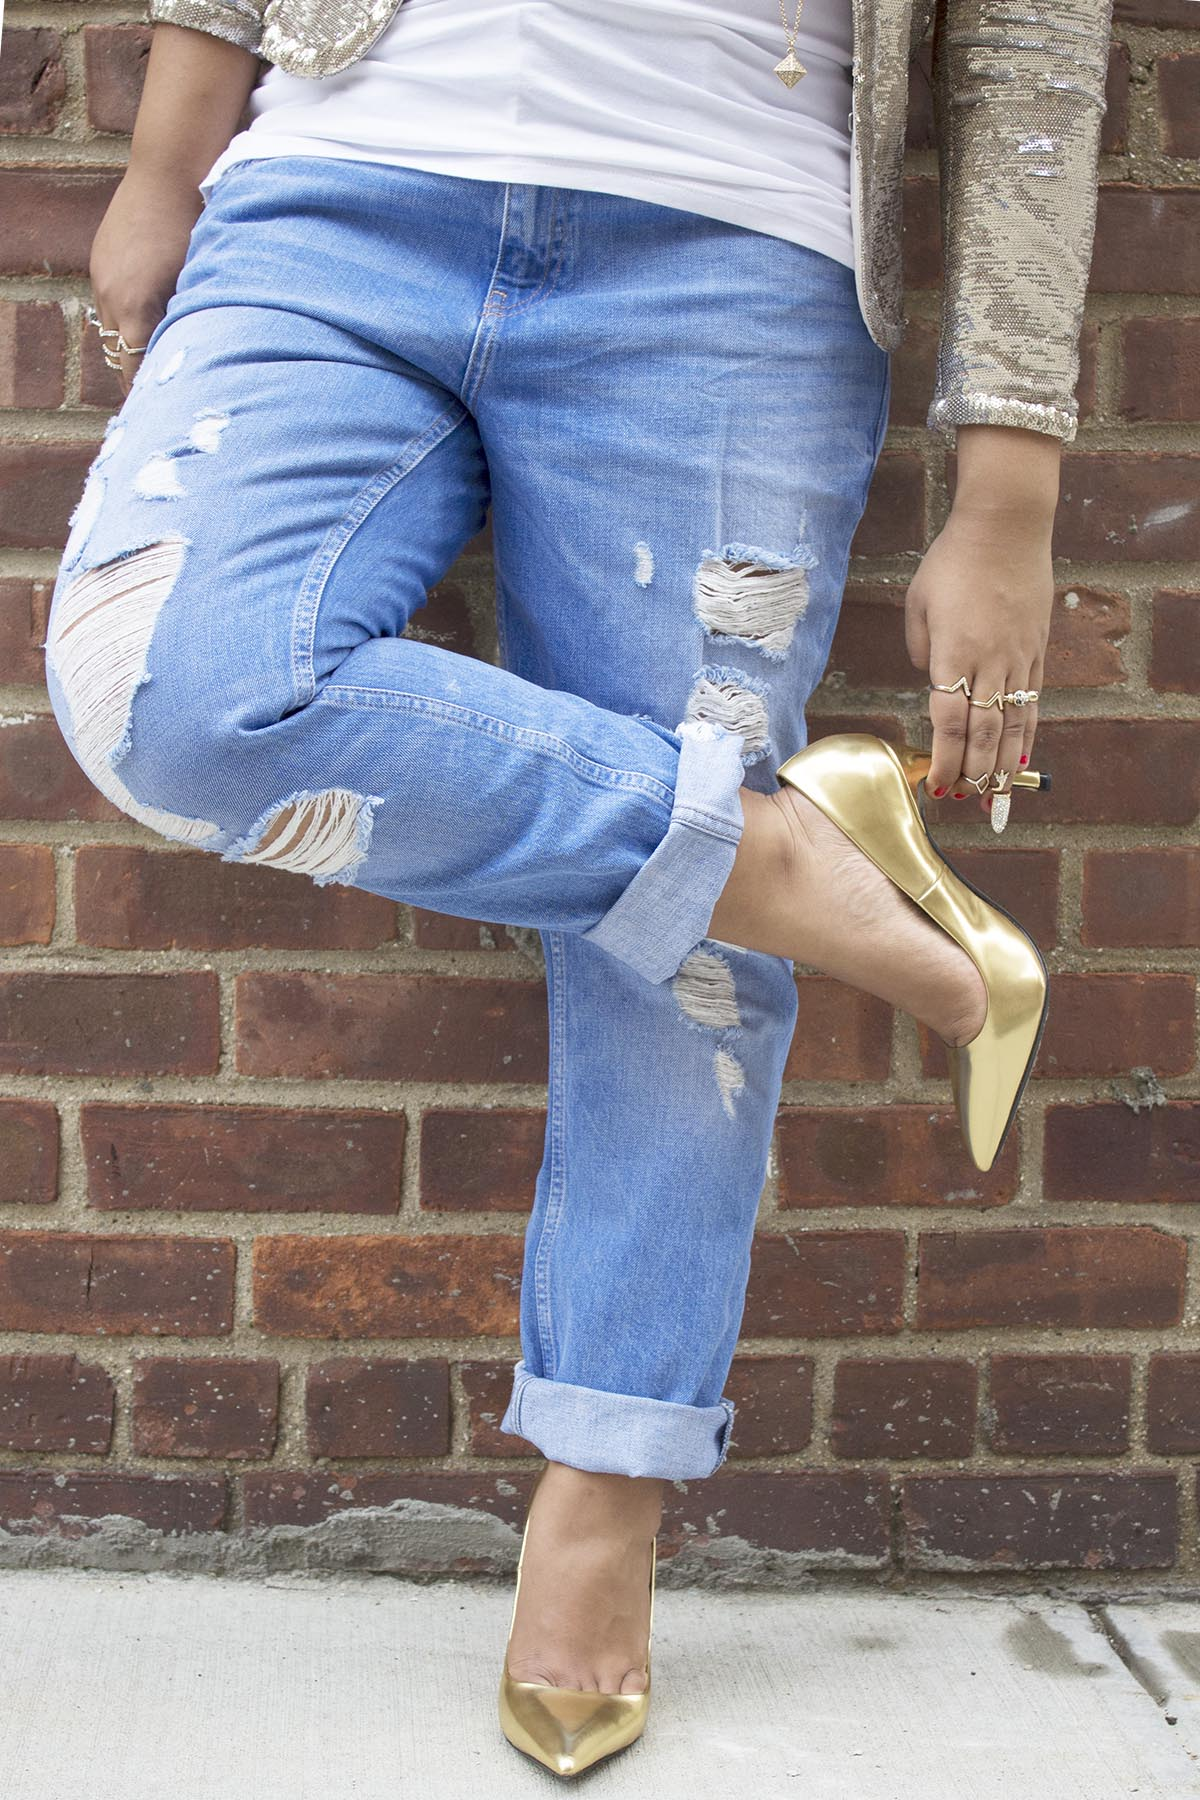 Sequin Jacket & Ripped Jeans 6.jpg